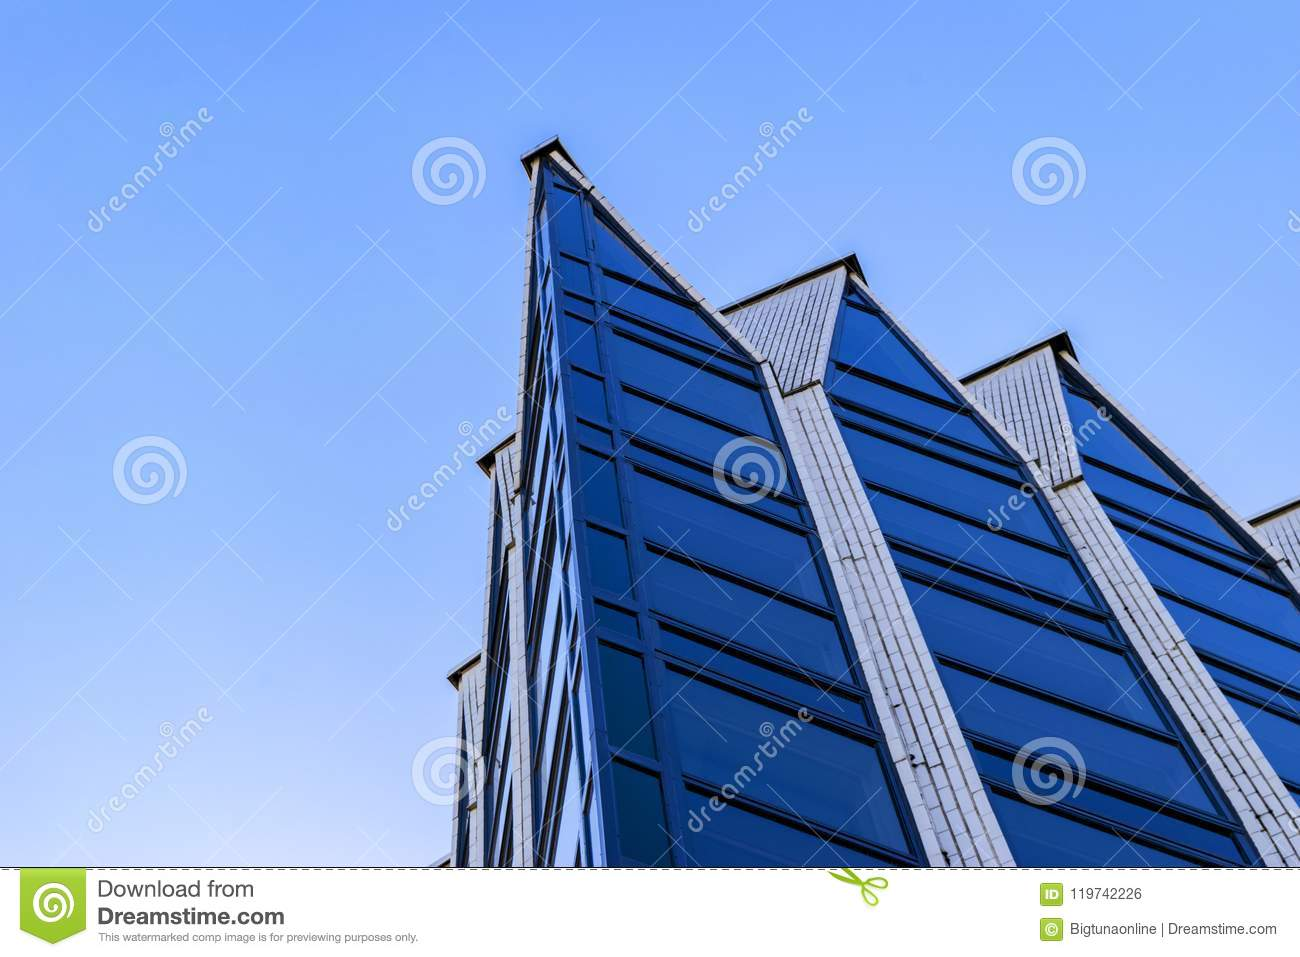 high tech modern architecture buildings. Details Of Office Building Exterior. Business Buildings Skyline Looking Up  With Blue Sky. Modern Architecture Apartment. High Tech High Modern